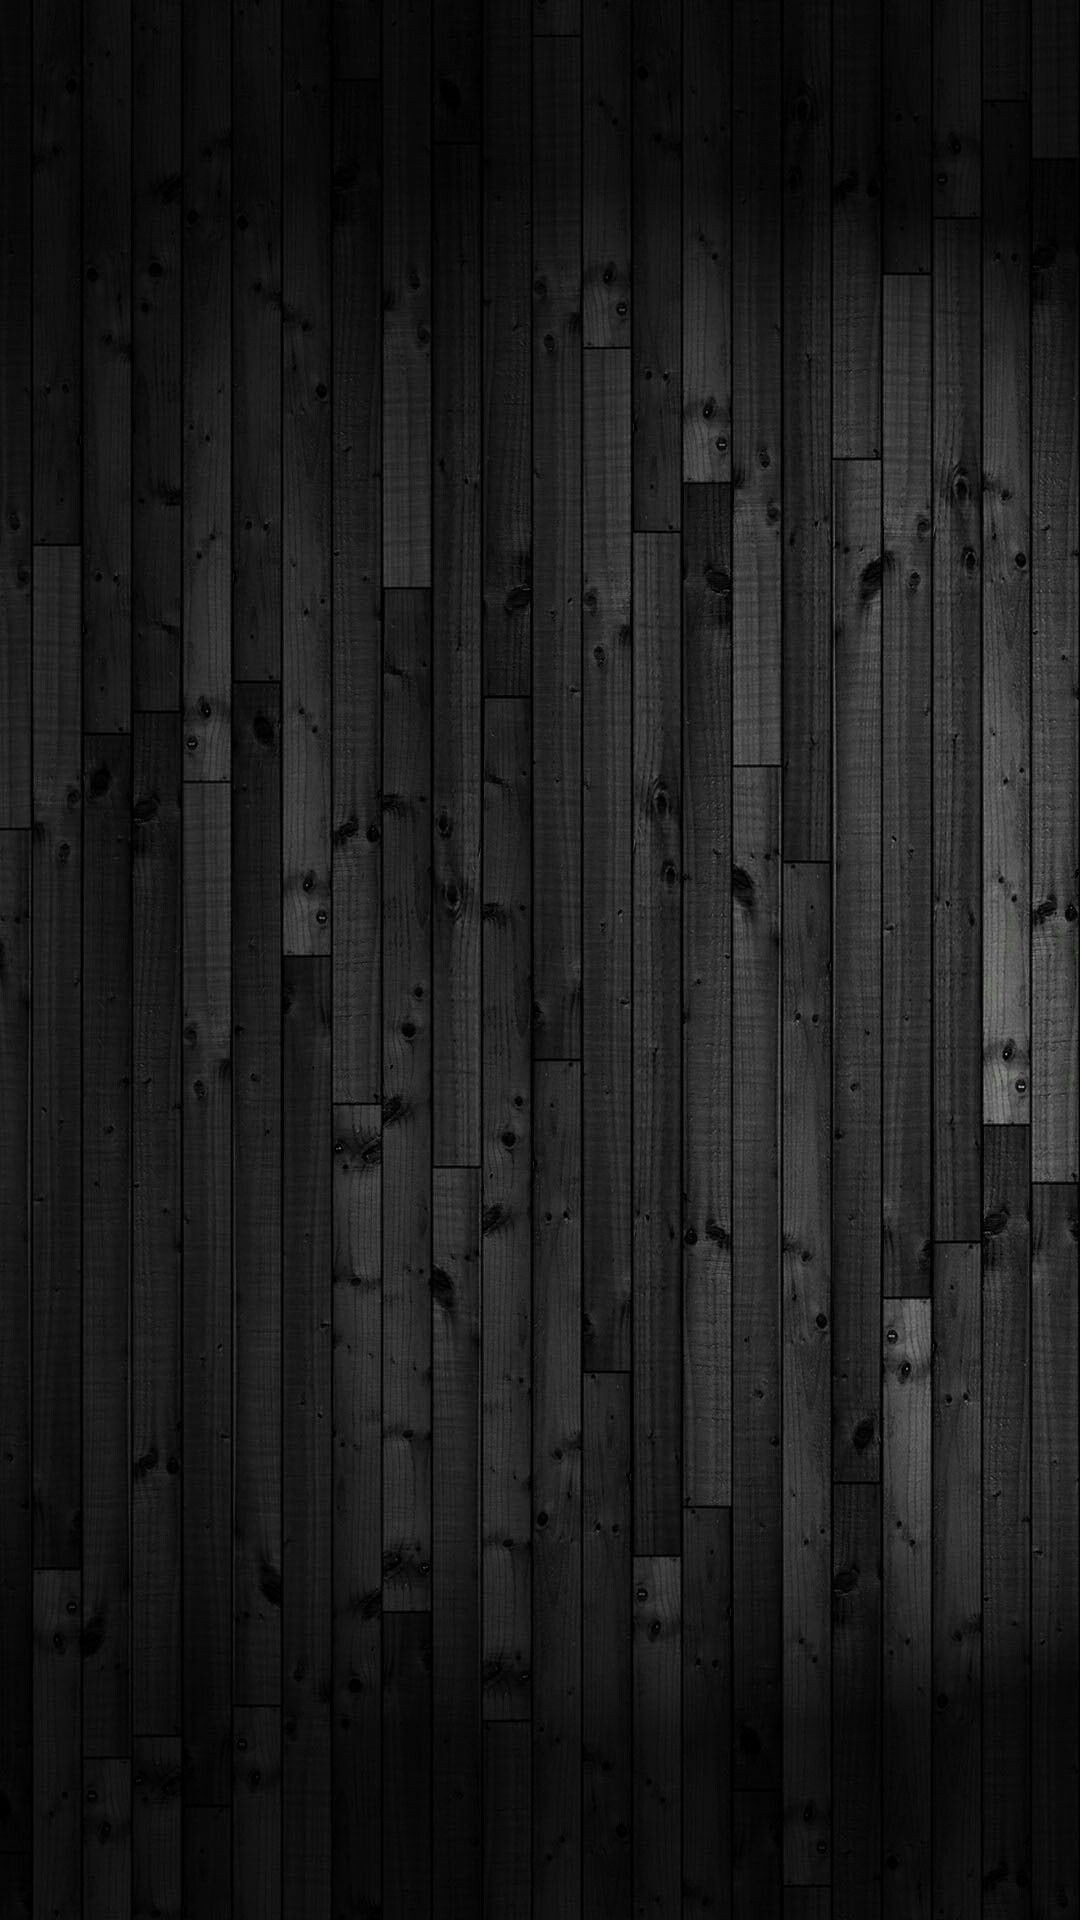 Wood iphone wallpaper high quality